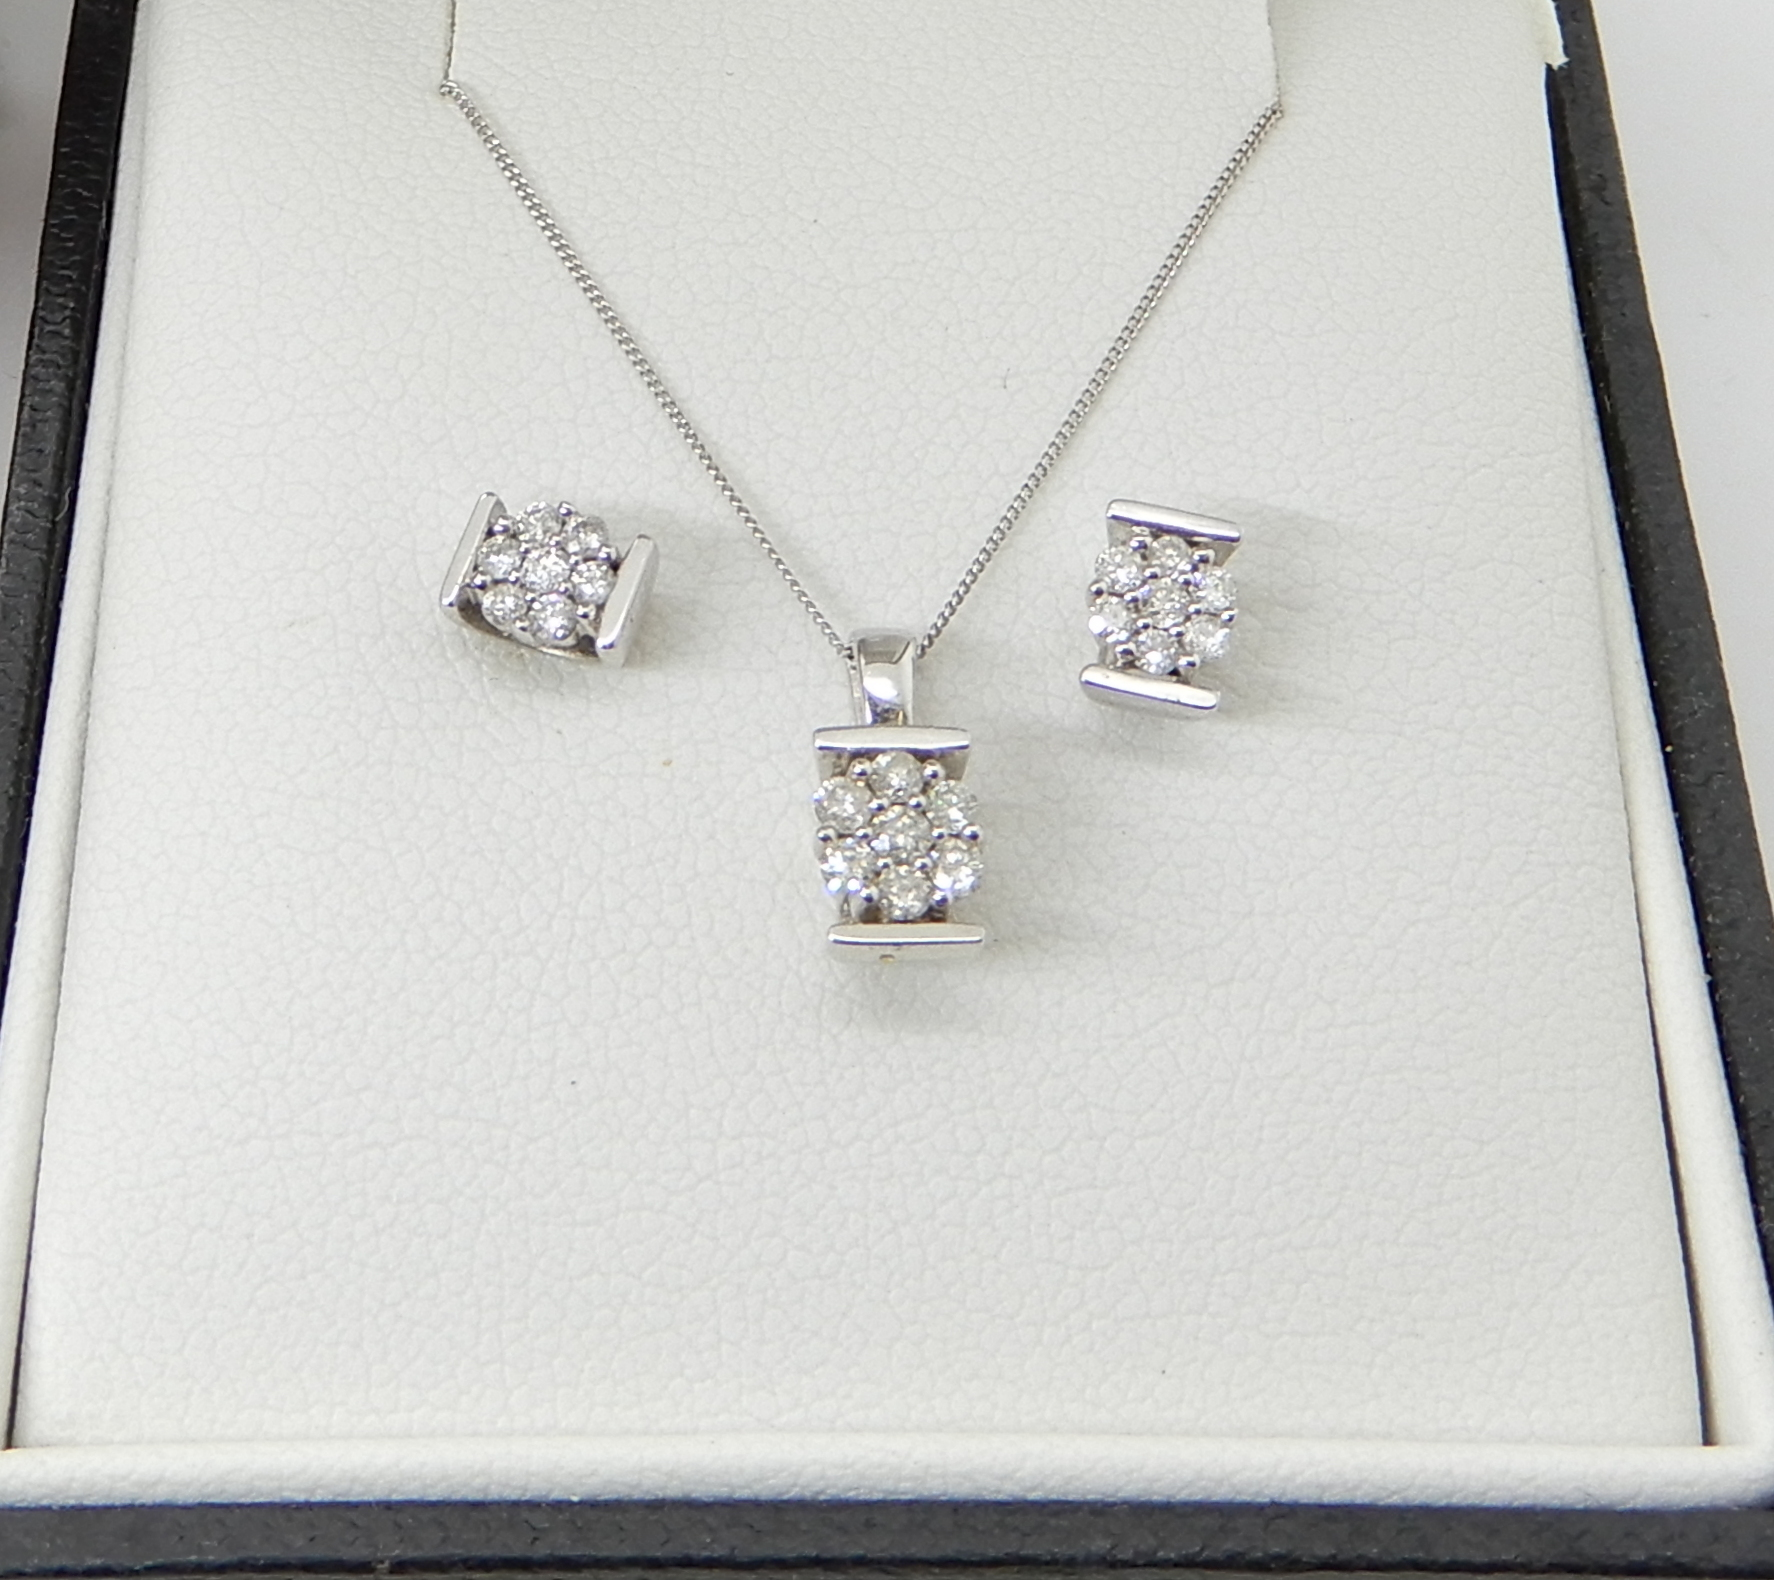 A 9ct white gold flower pendant and chain and a pair of matching earrings, set with estimated approx